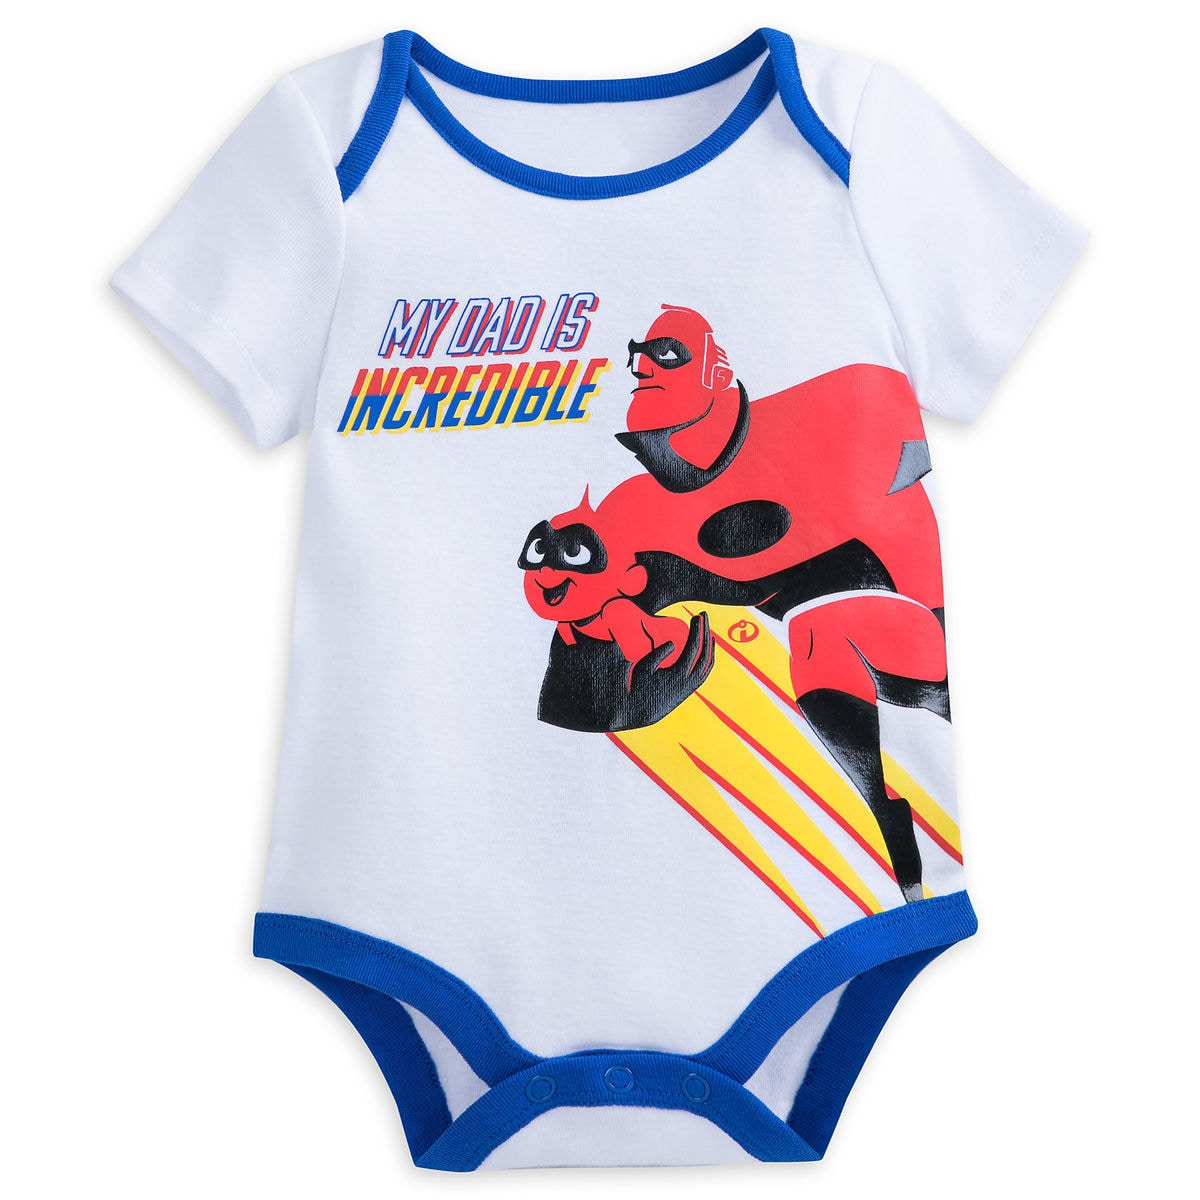 Thumbnail Image of Incredibles 2 Bodysuit for Baby - White # 1